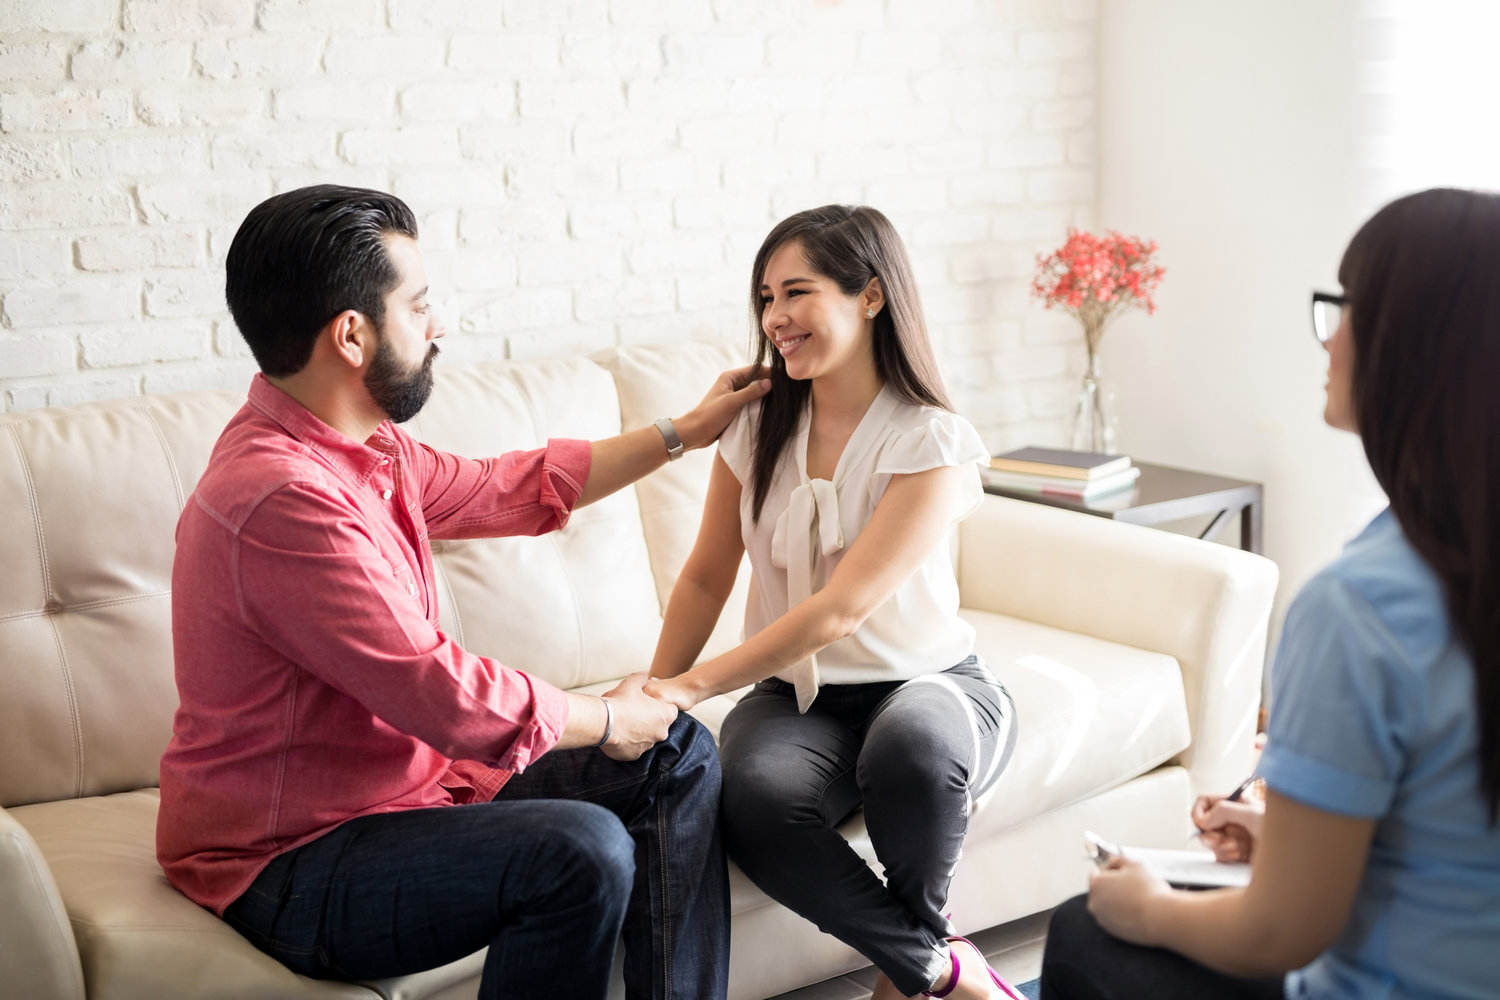 THE MOVE TO HARMONY: SAN FRANCISCO COUPLES THERAPIST SPEAKS